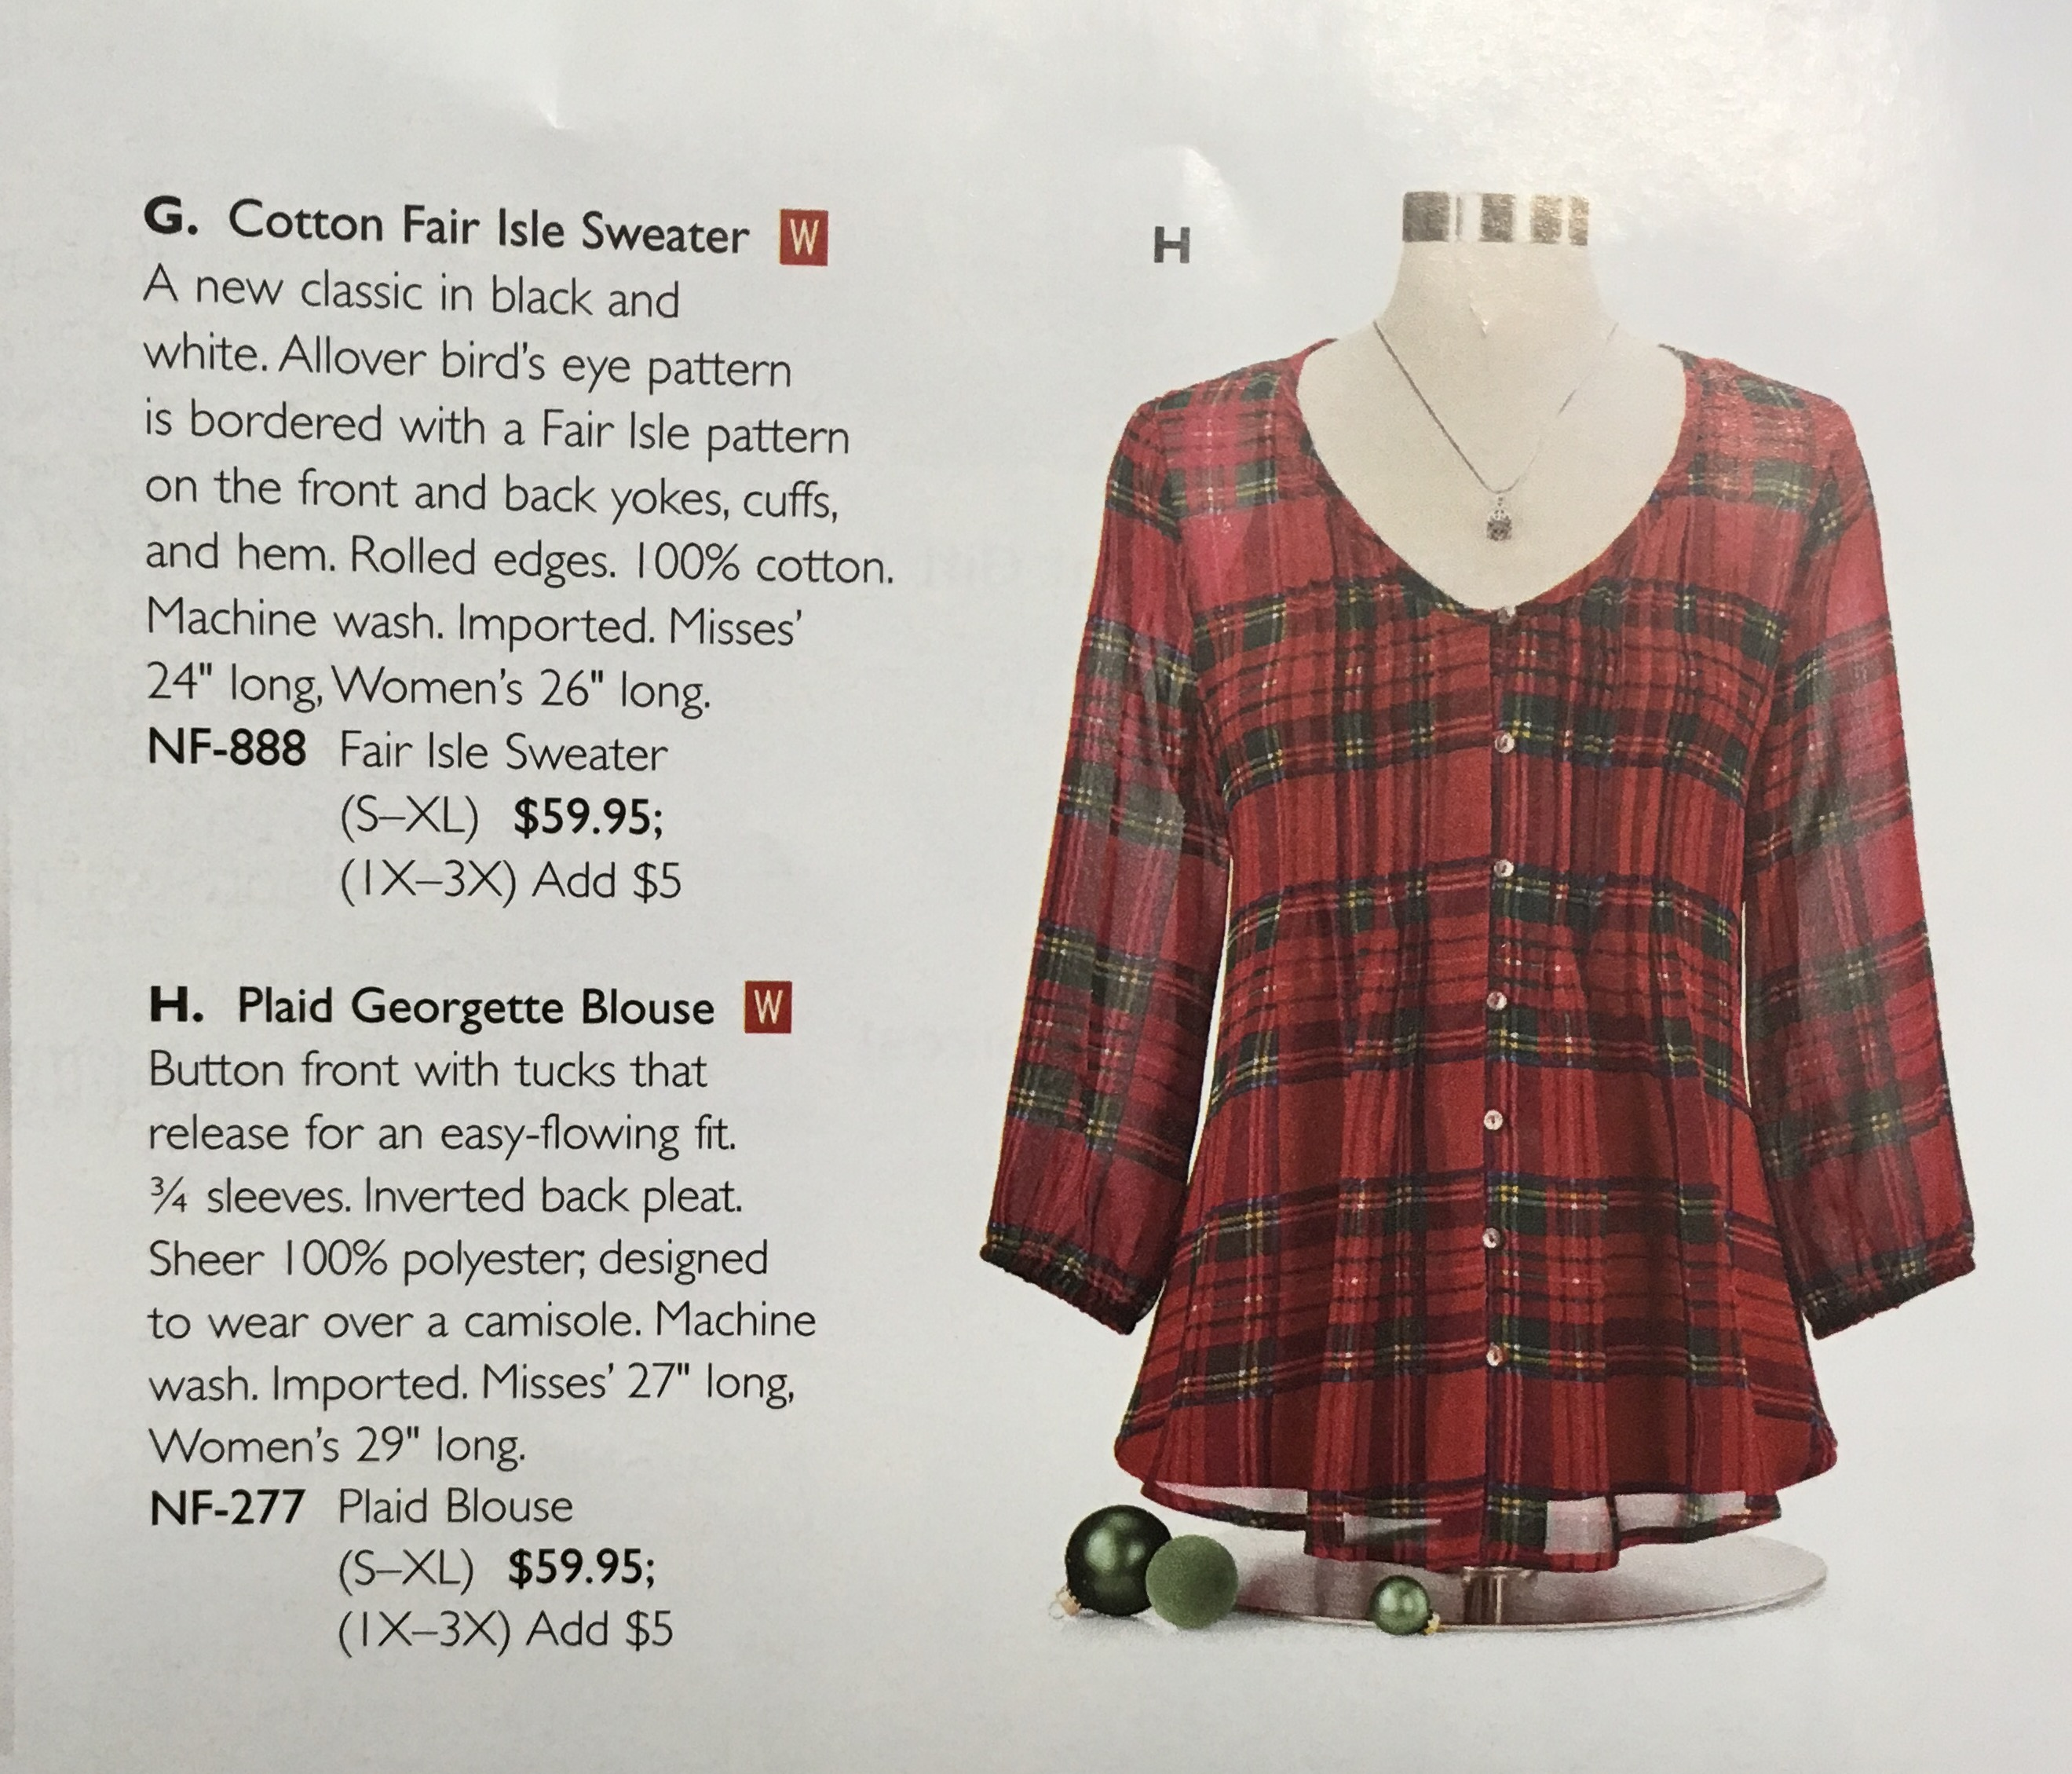 NorthStyle Coupons - Save $16 w/ 2017 Coupon and Promo Codes